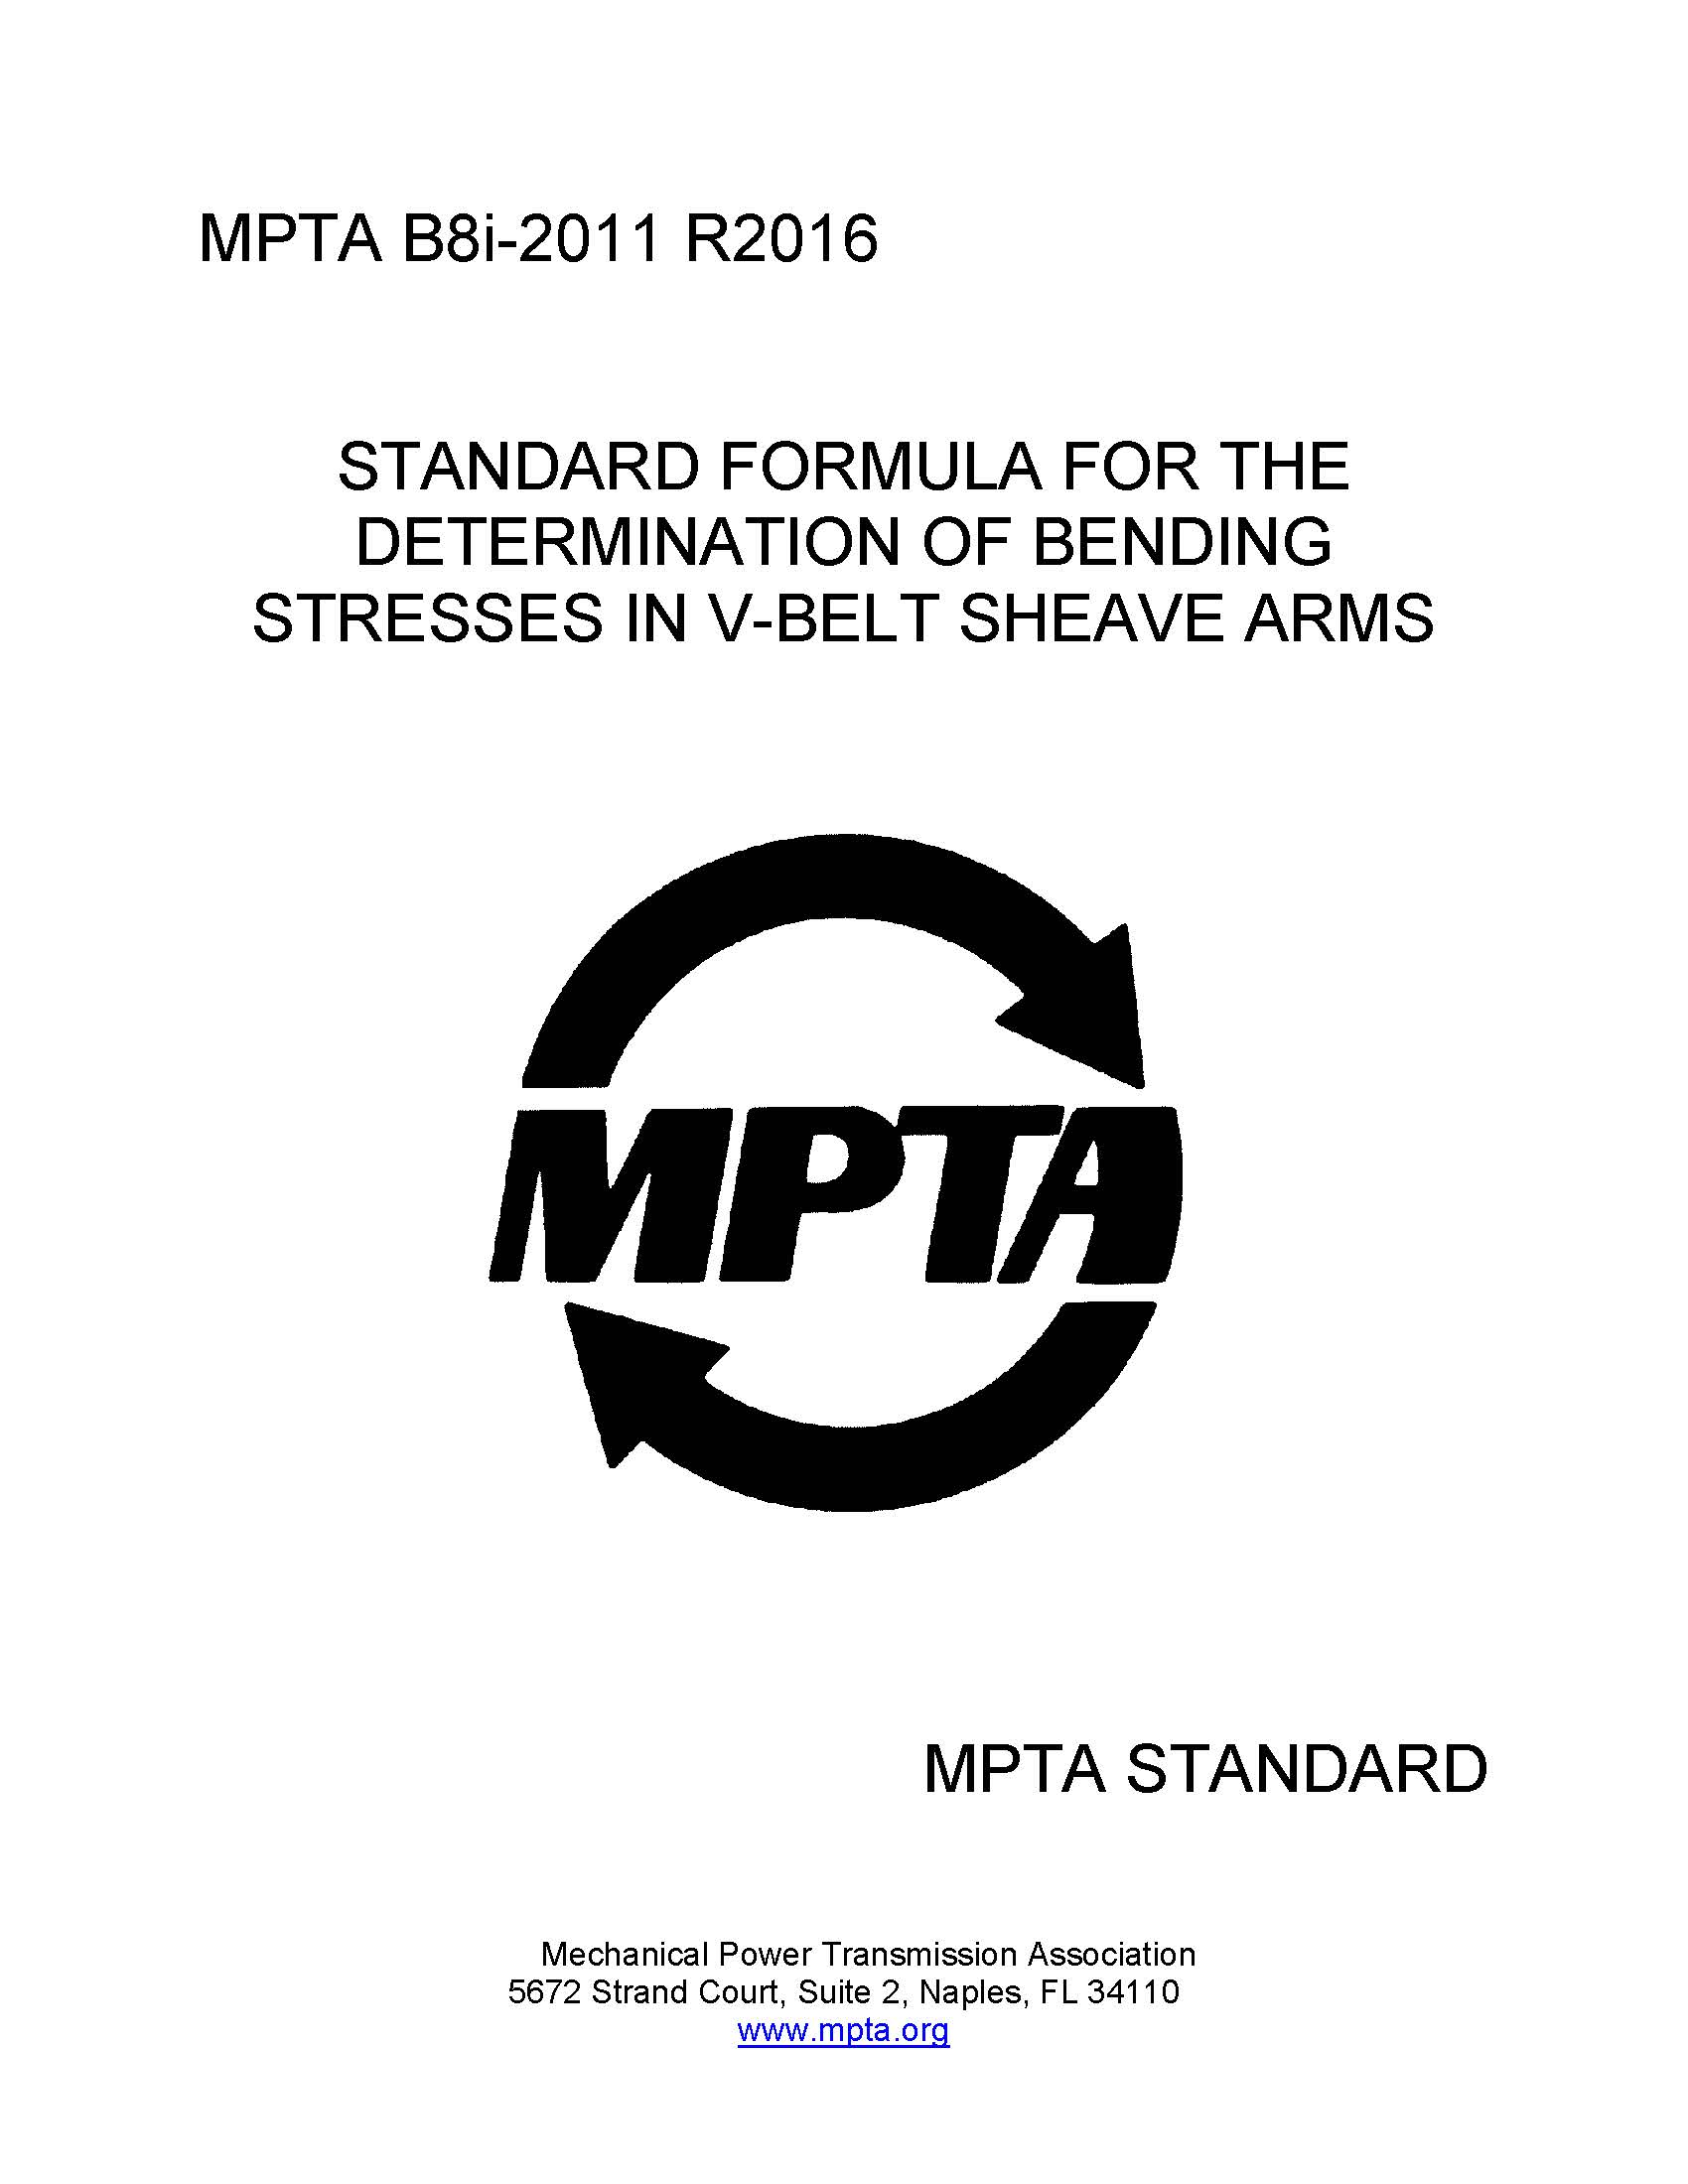 An image of the MPTA standard B8i, Standard Formula for the Determination of Bending stresses in V-Belt Sheave Arms.